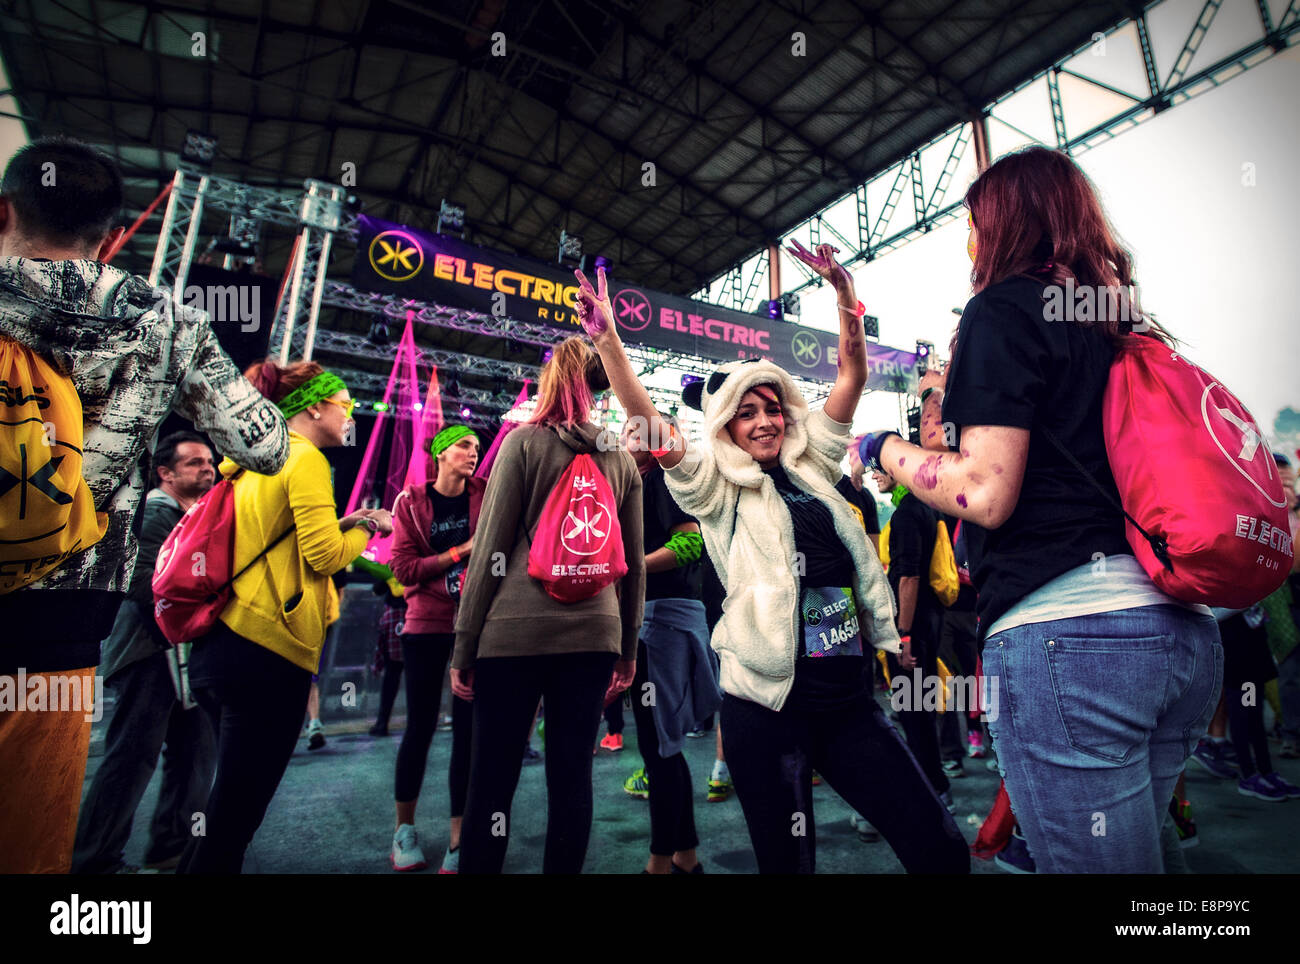 Turin, Italy. 11th Oct, 2014. Parco Dora  the event the Electric run Credit:  Realy Easy Star/Alamy Live News - Stock Image